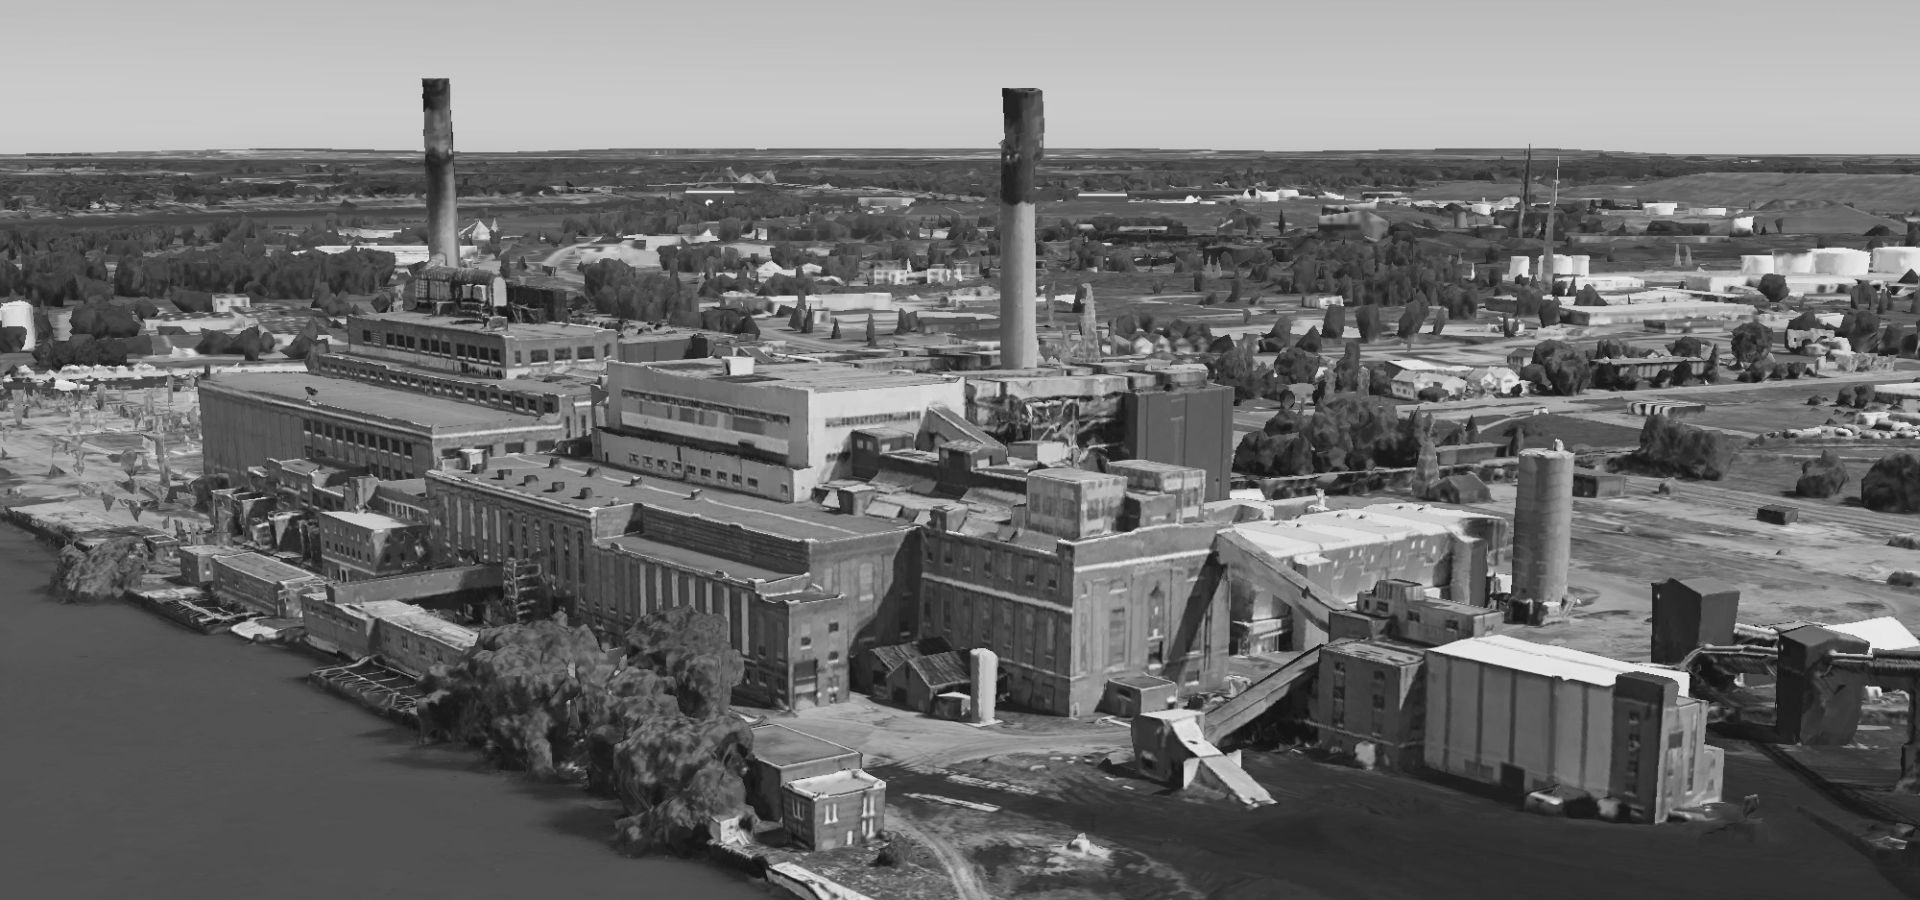 The retired Huntley Generating Station on the banks of the Niagara River via Google Earth